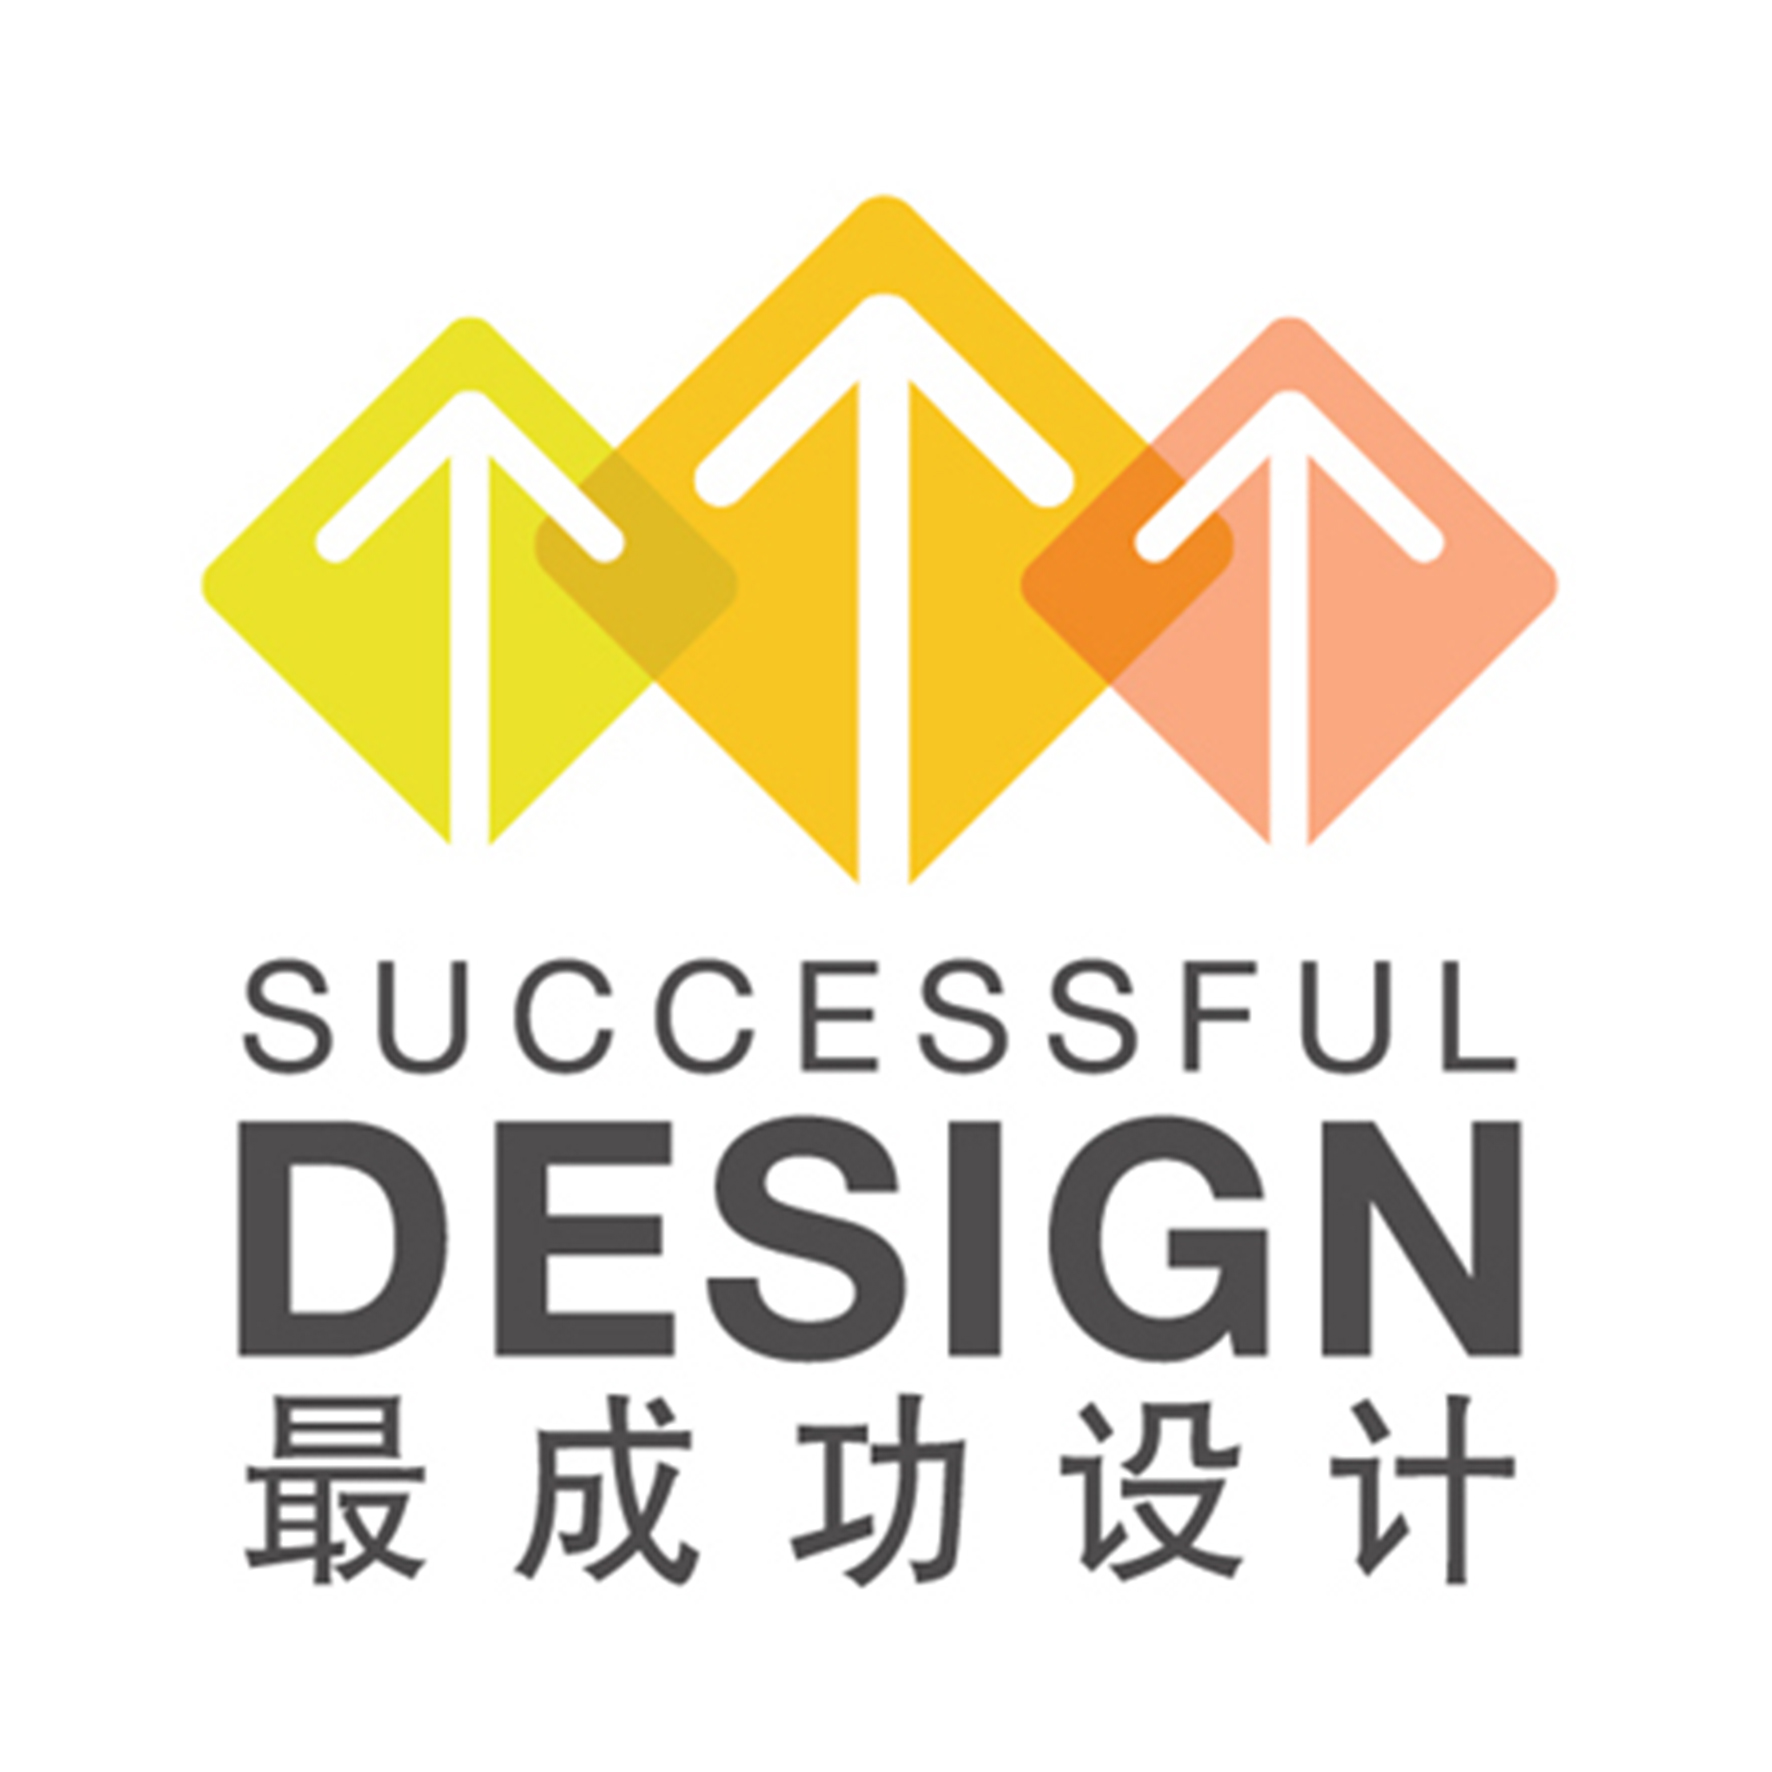 Successful Design Award - SPACE, China's Successful Design Award 2015 (空间类成功设计大奖 – 2015年度成功设计大赛)